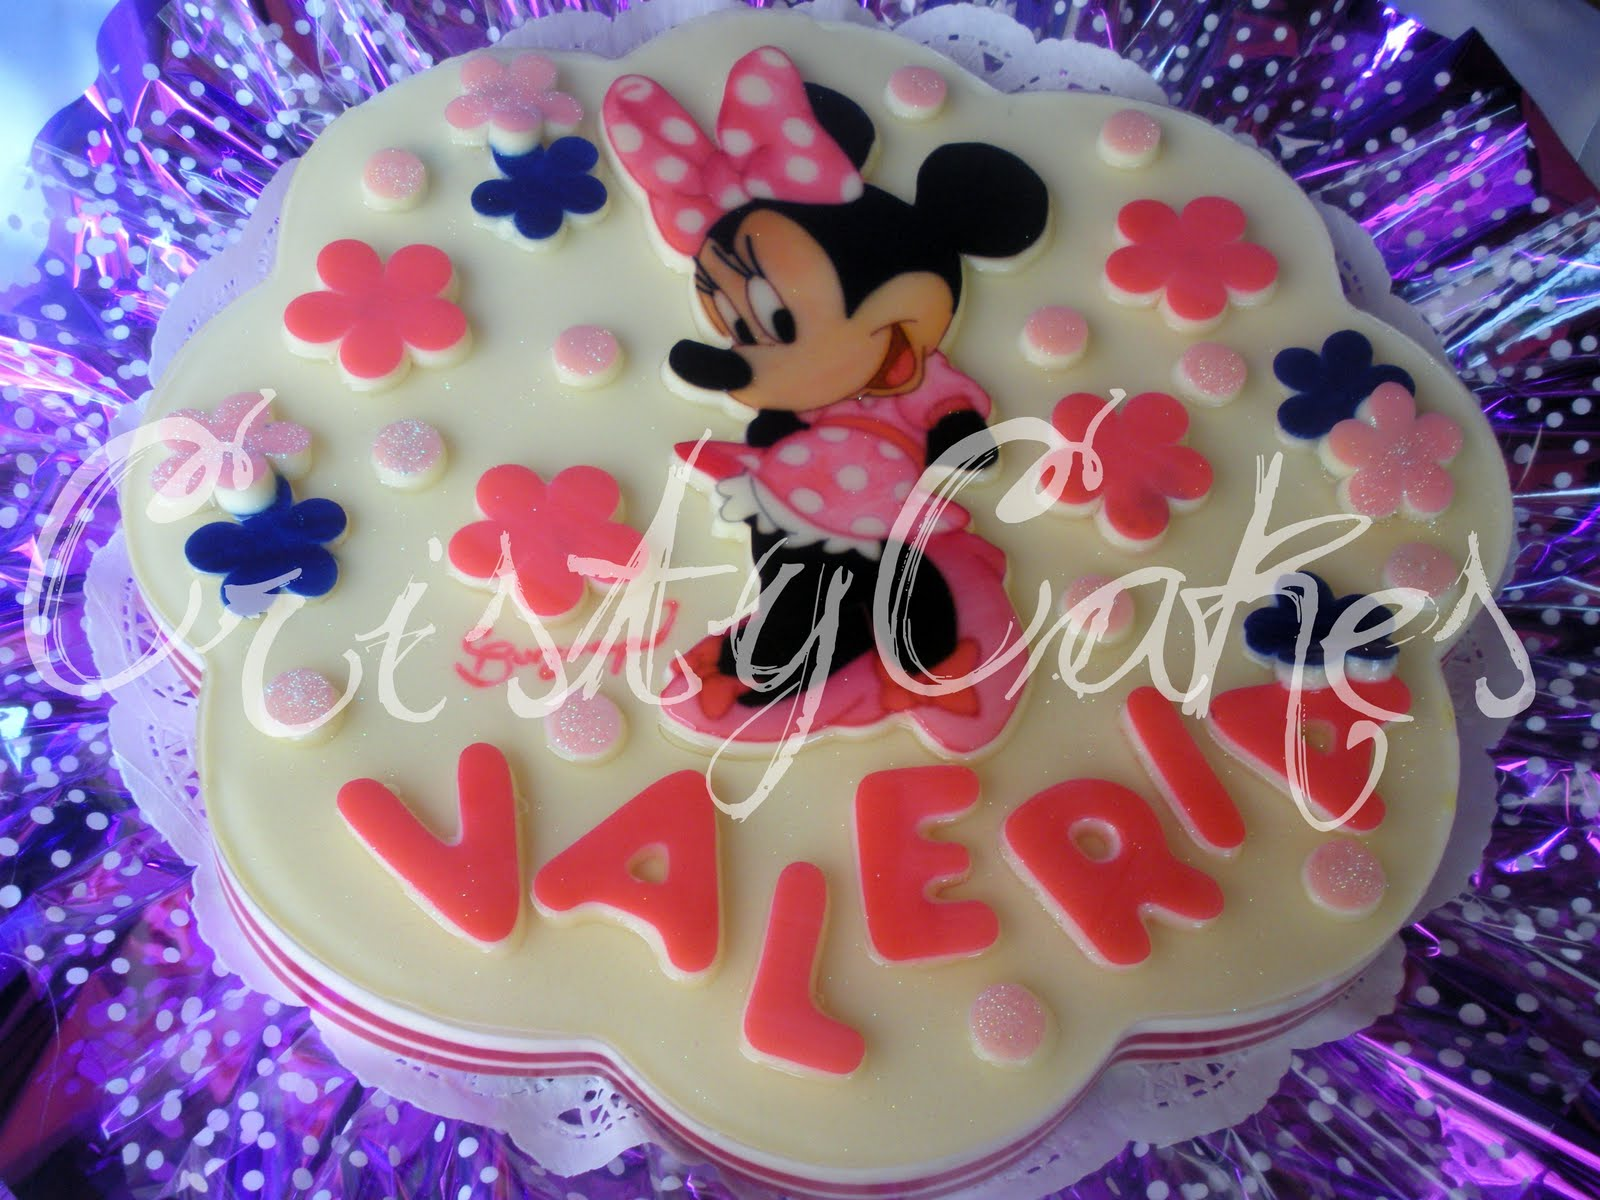 Cristy S Cakes 04 11